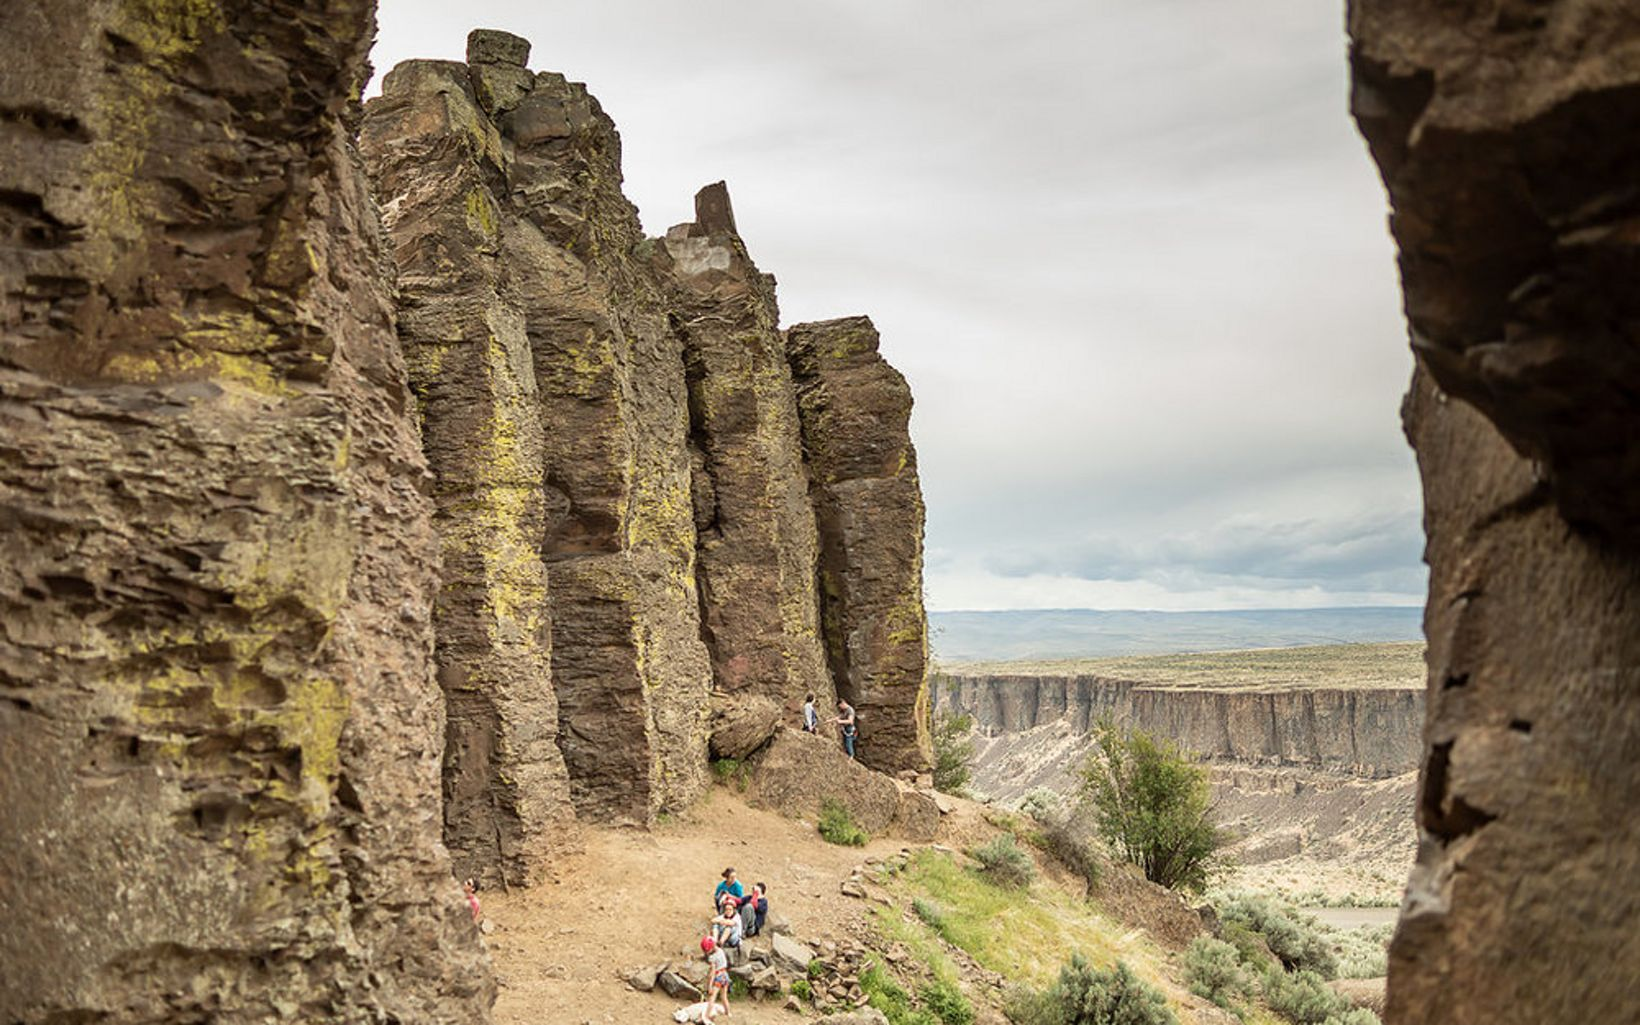 and abilities take on the Feathers at Frenchman Coulee along the Columbia River near Vantage, WA. Coulees were carved at the end of the last ice age, as g